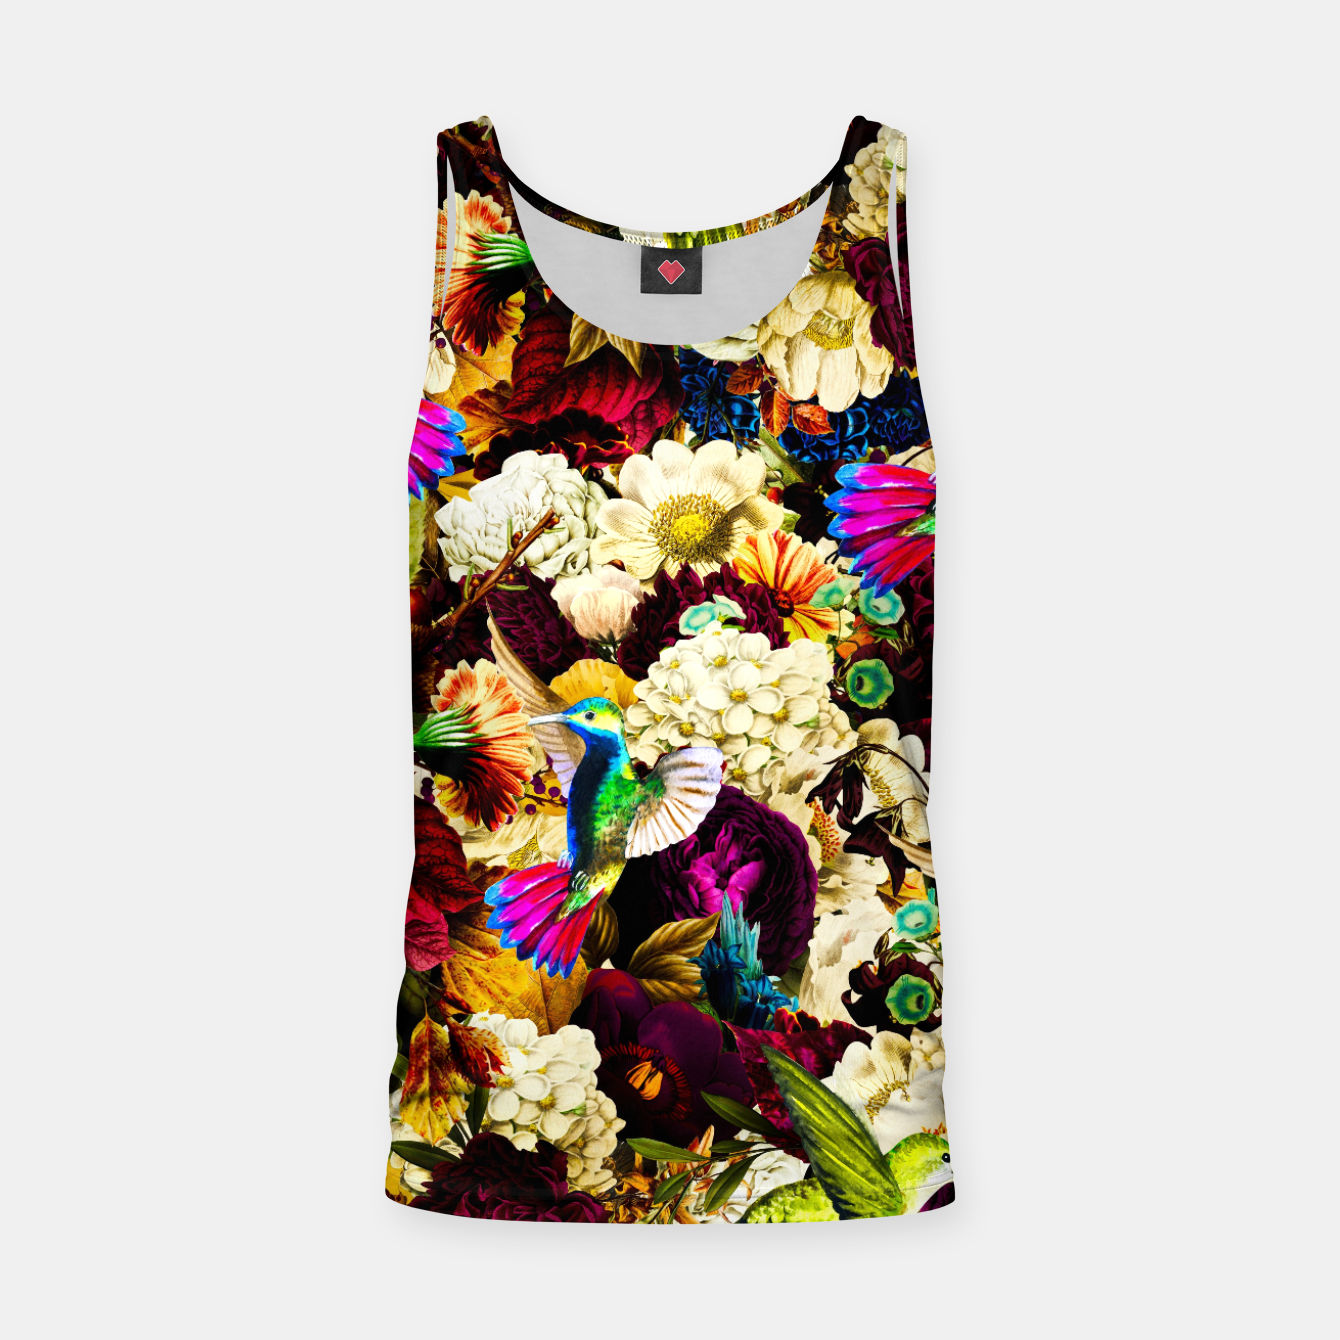 Image de hummingbird paradise ethereal autumn flower pattern std Tank Top - Live Heroes